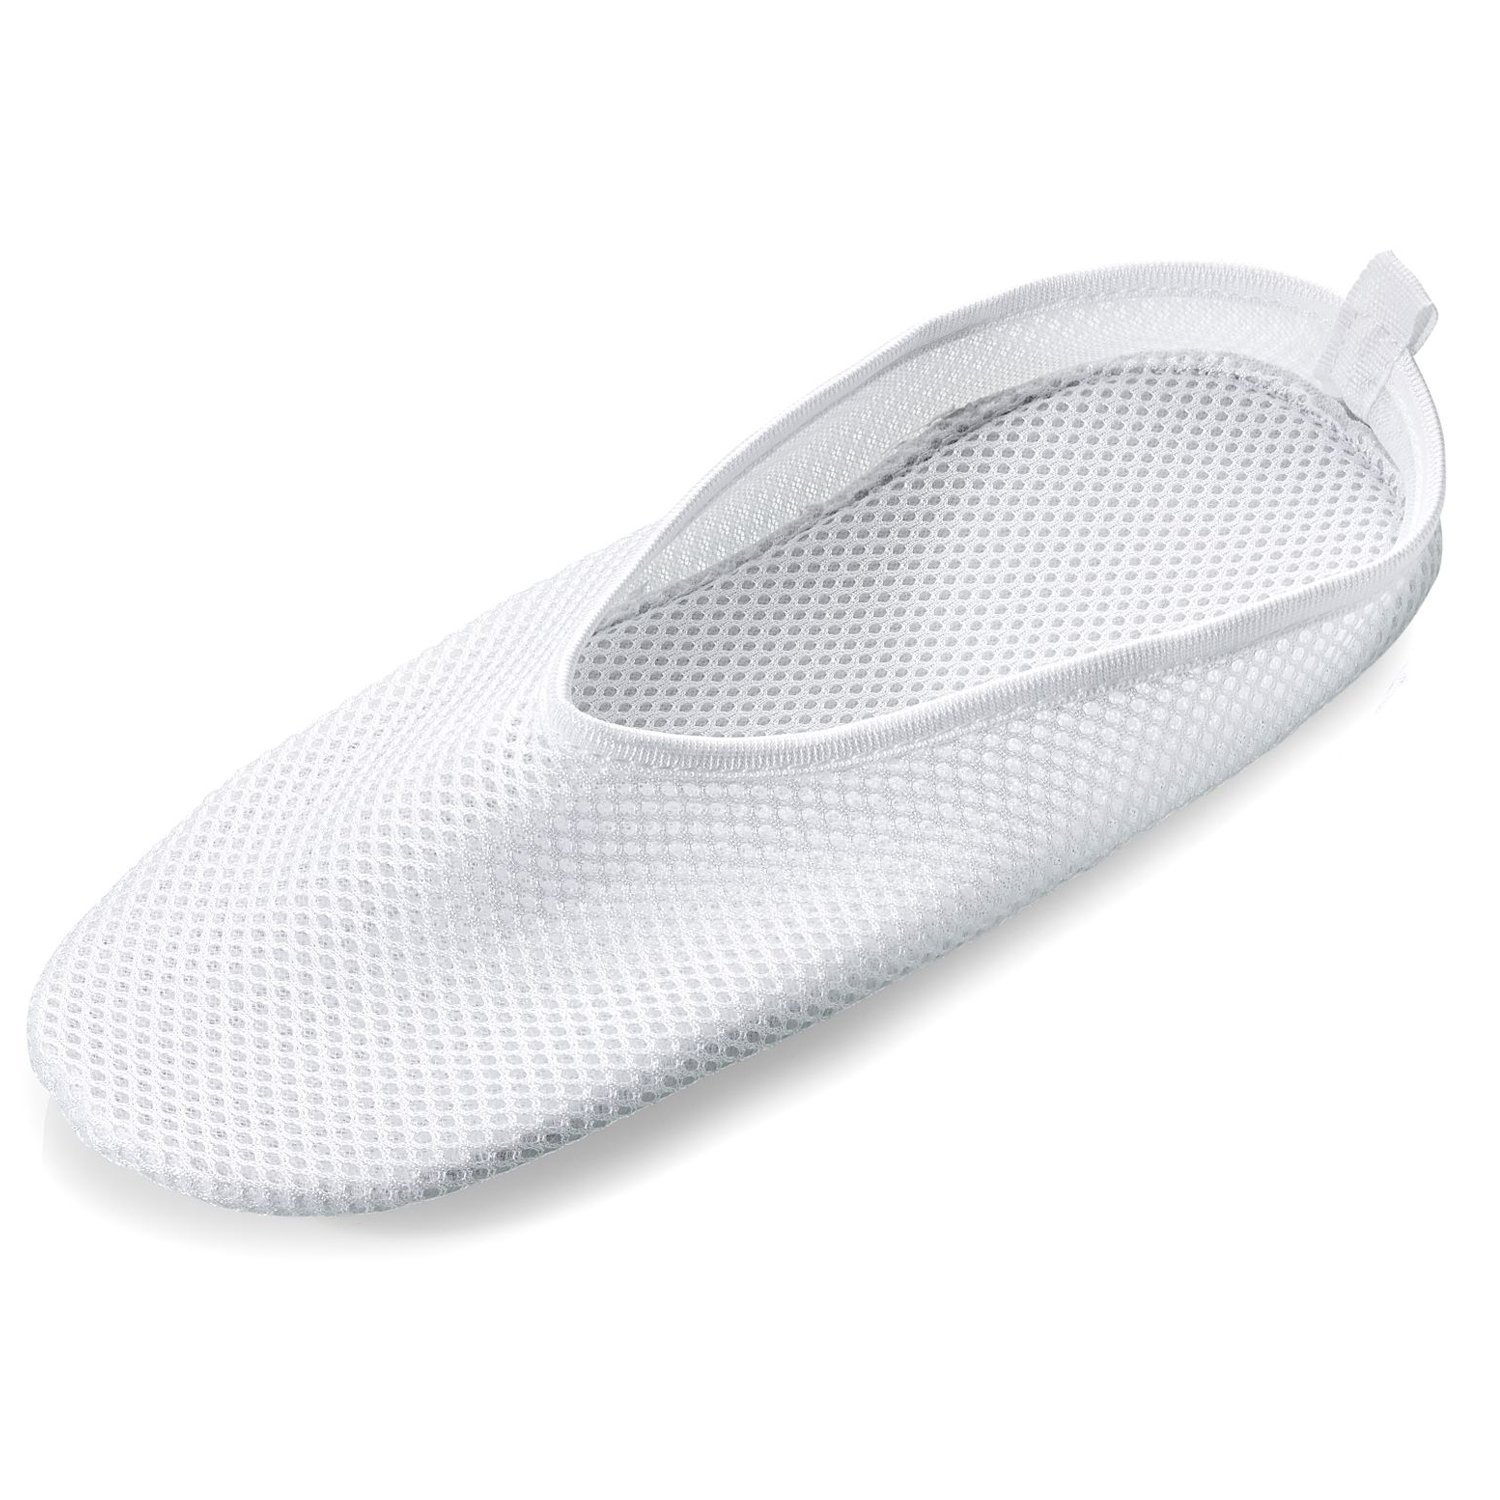 Secure Slip Resistant Shower Shoes W/ Non Skid Heavy Duty Grooved ...